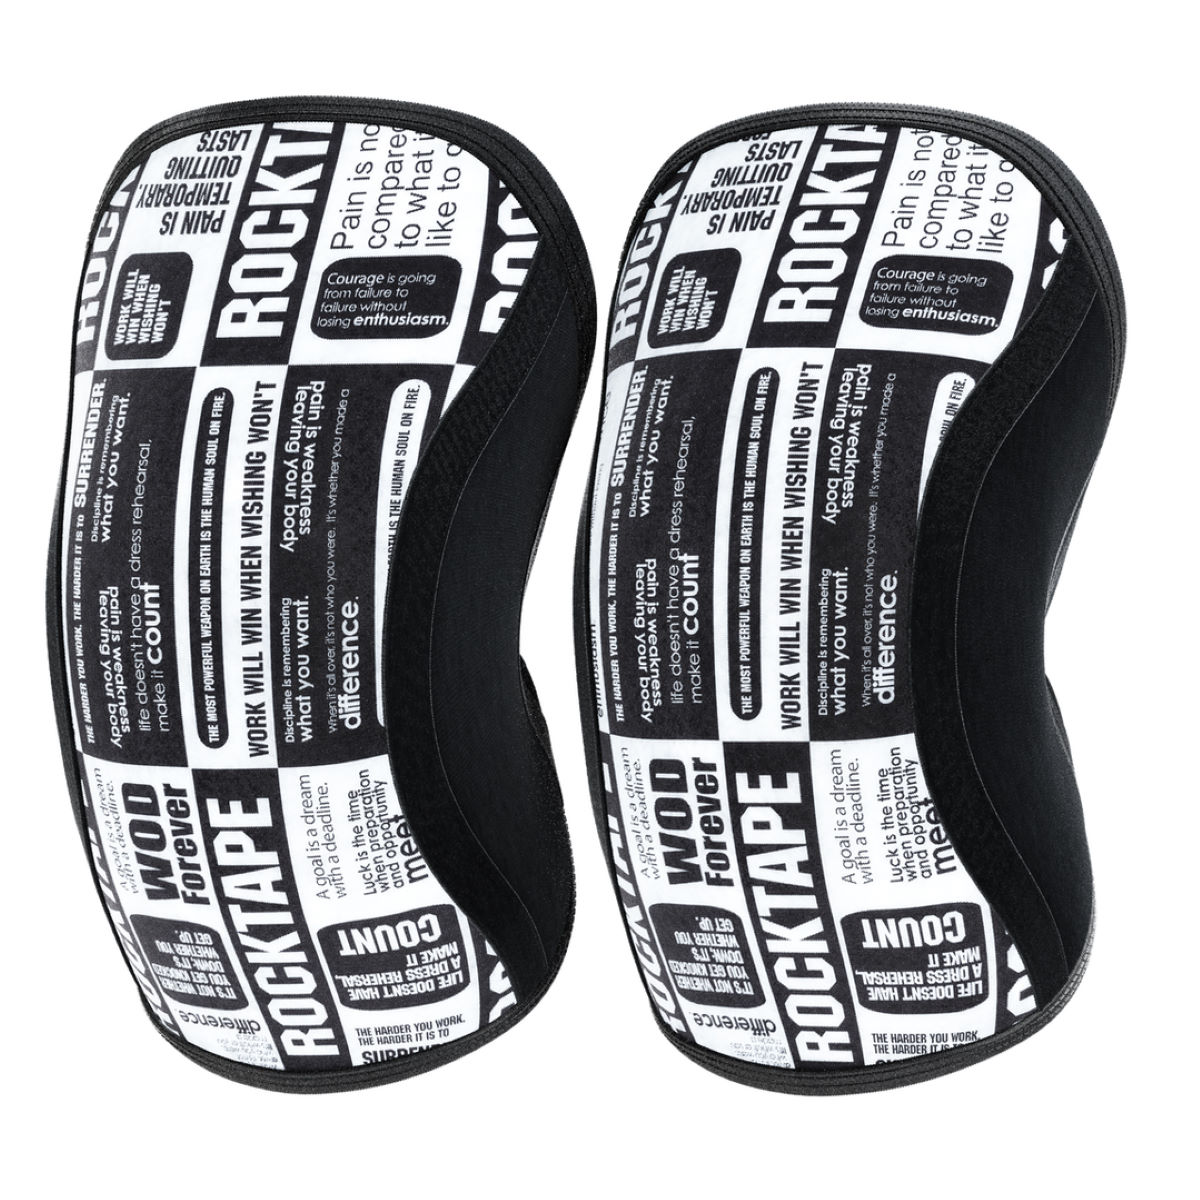 Rodilleras Rocktape Assassin (5 mm) - Lesiones